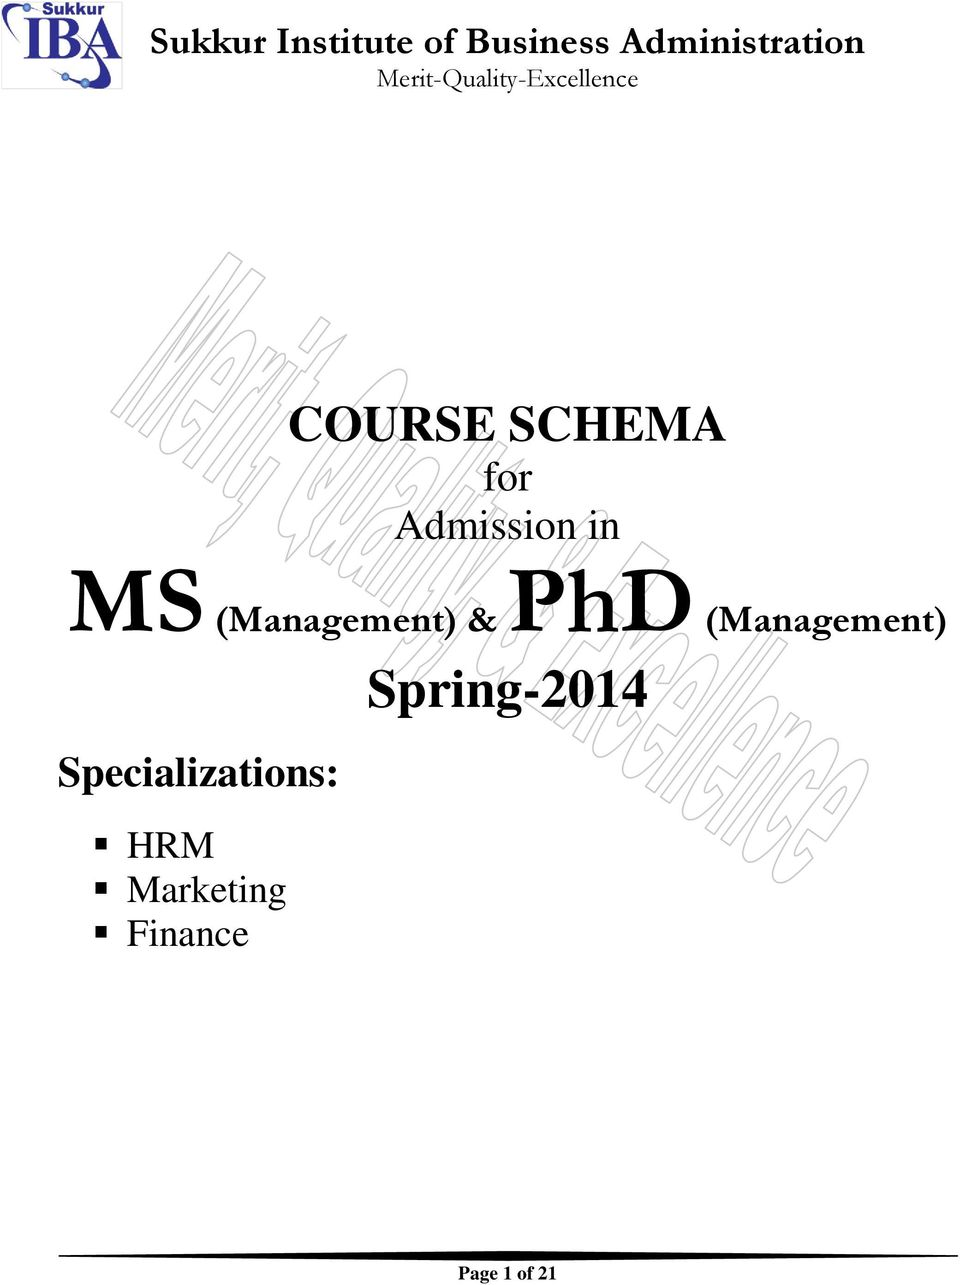 Admission in MS (Management) & PhD (Management)